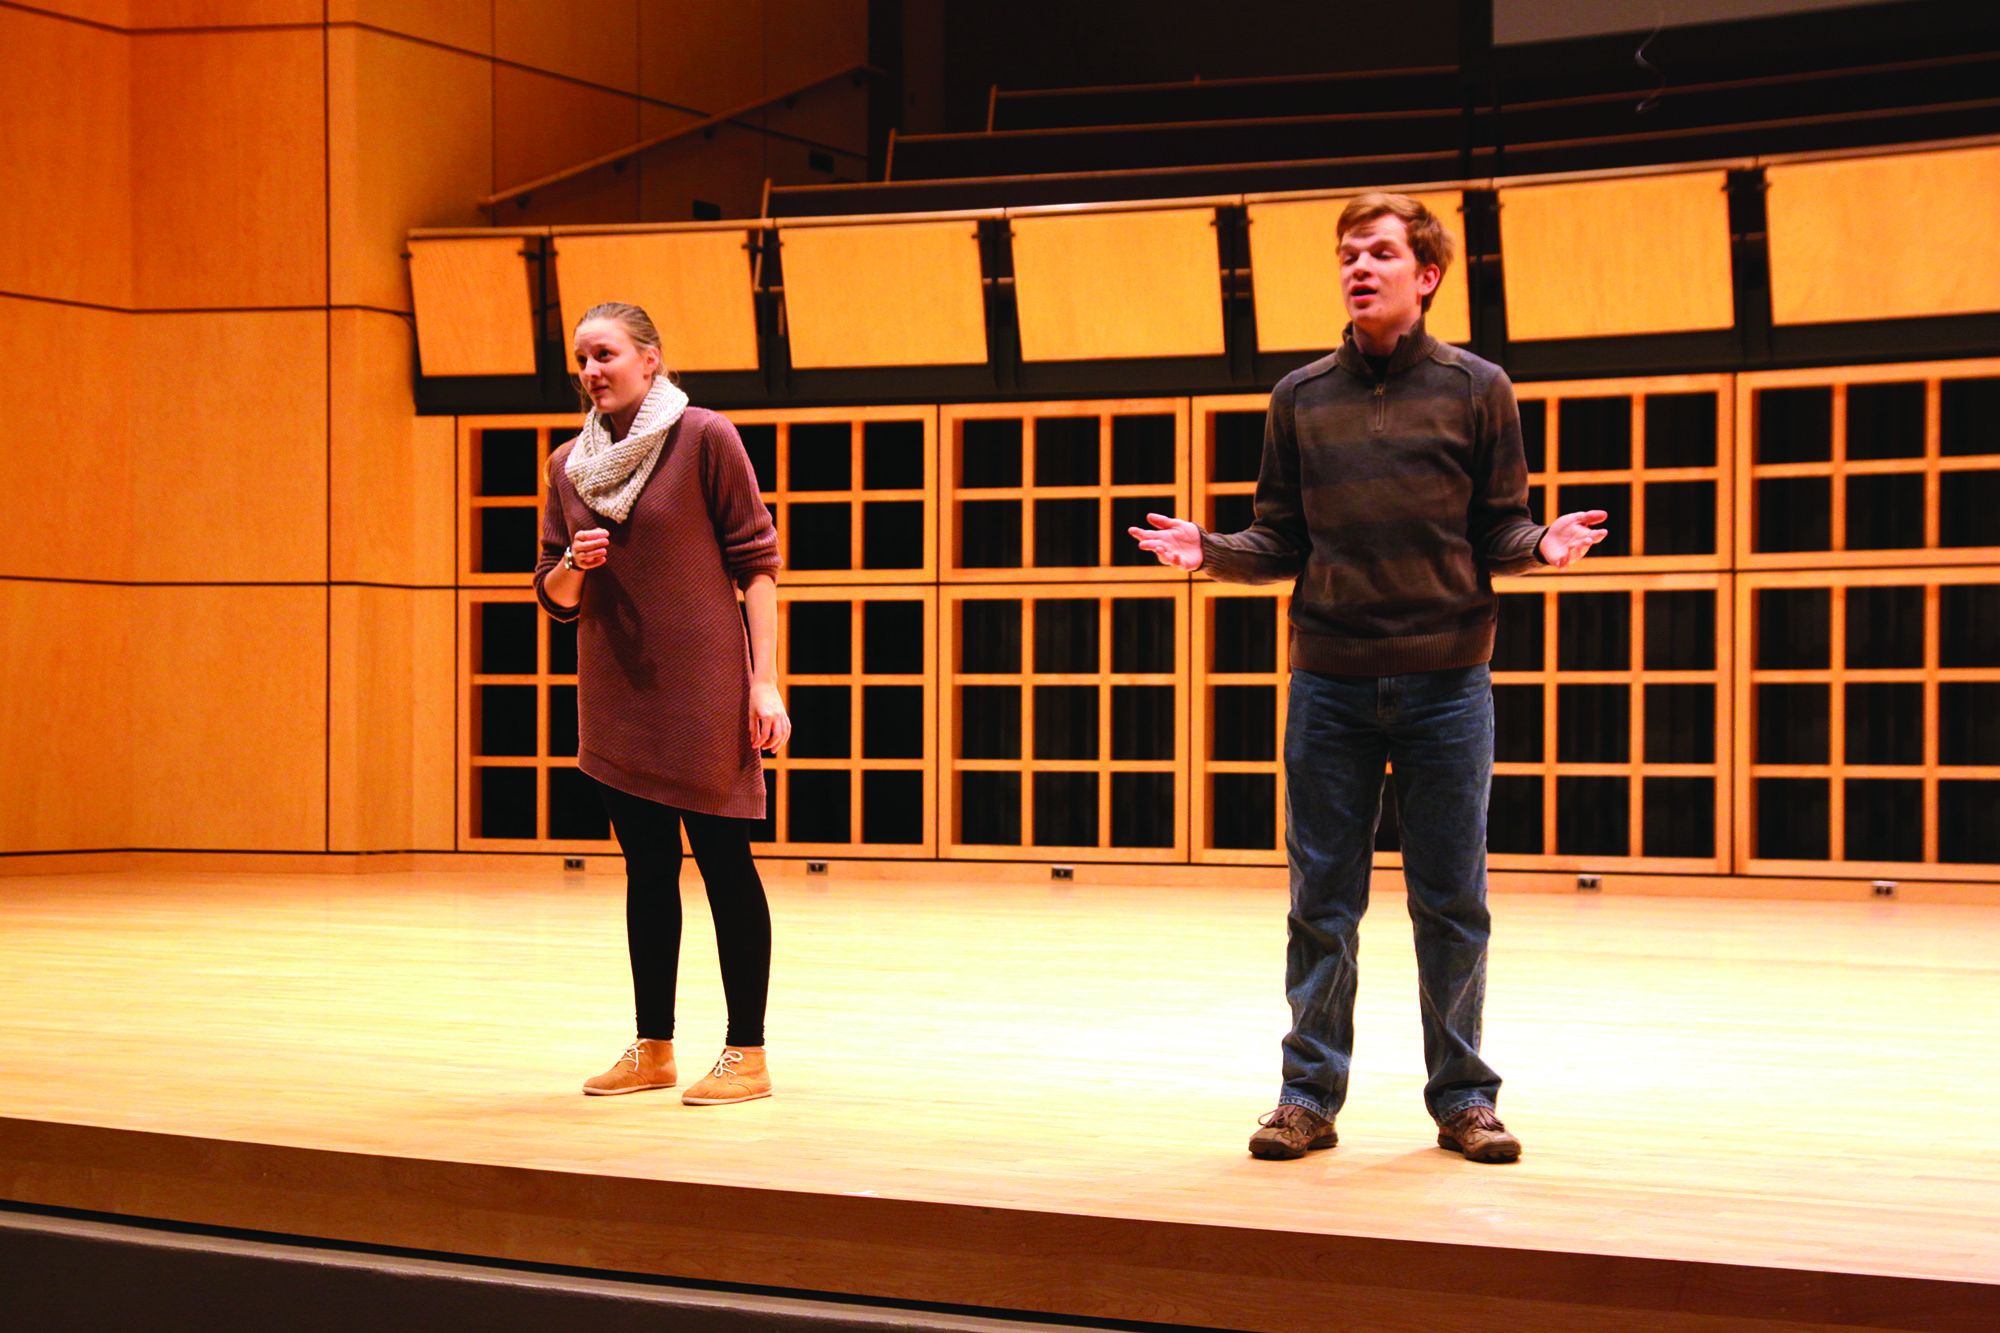 Rhianna Cockrell and Ben Ganger practice their vocals on the Sauder Concert Hall stage